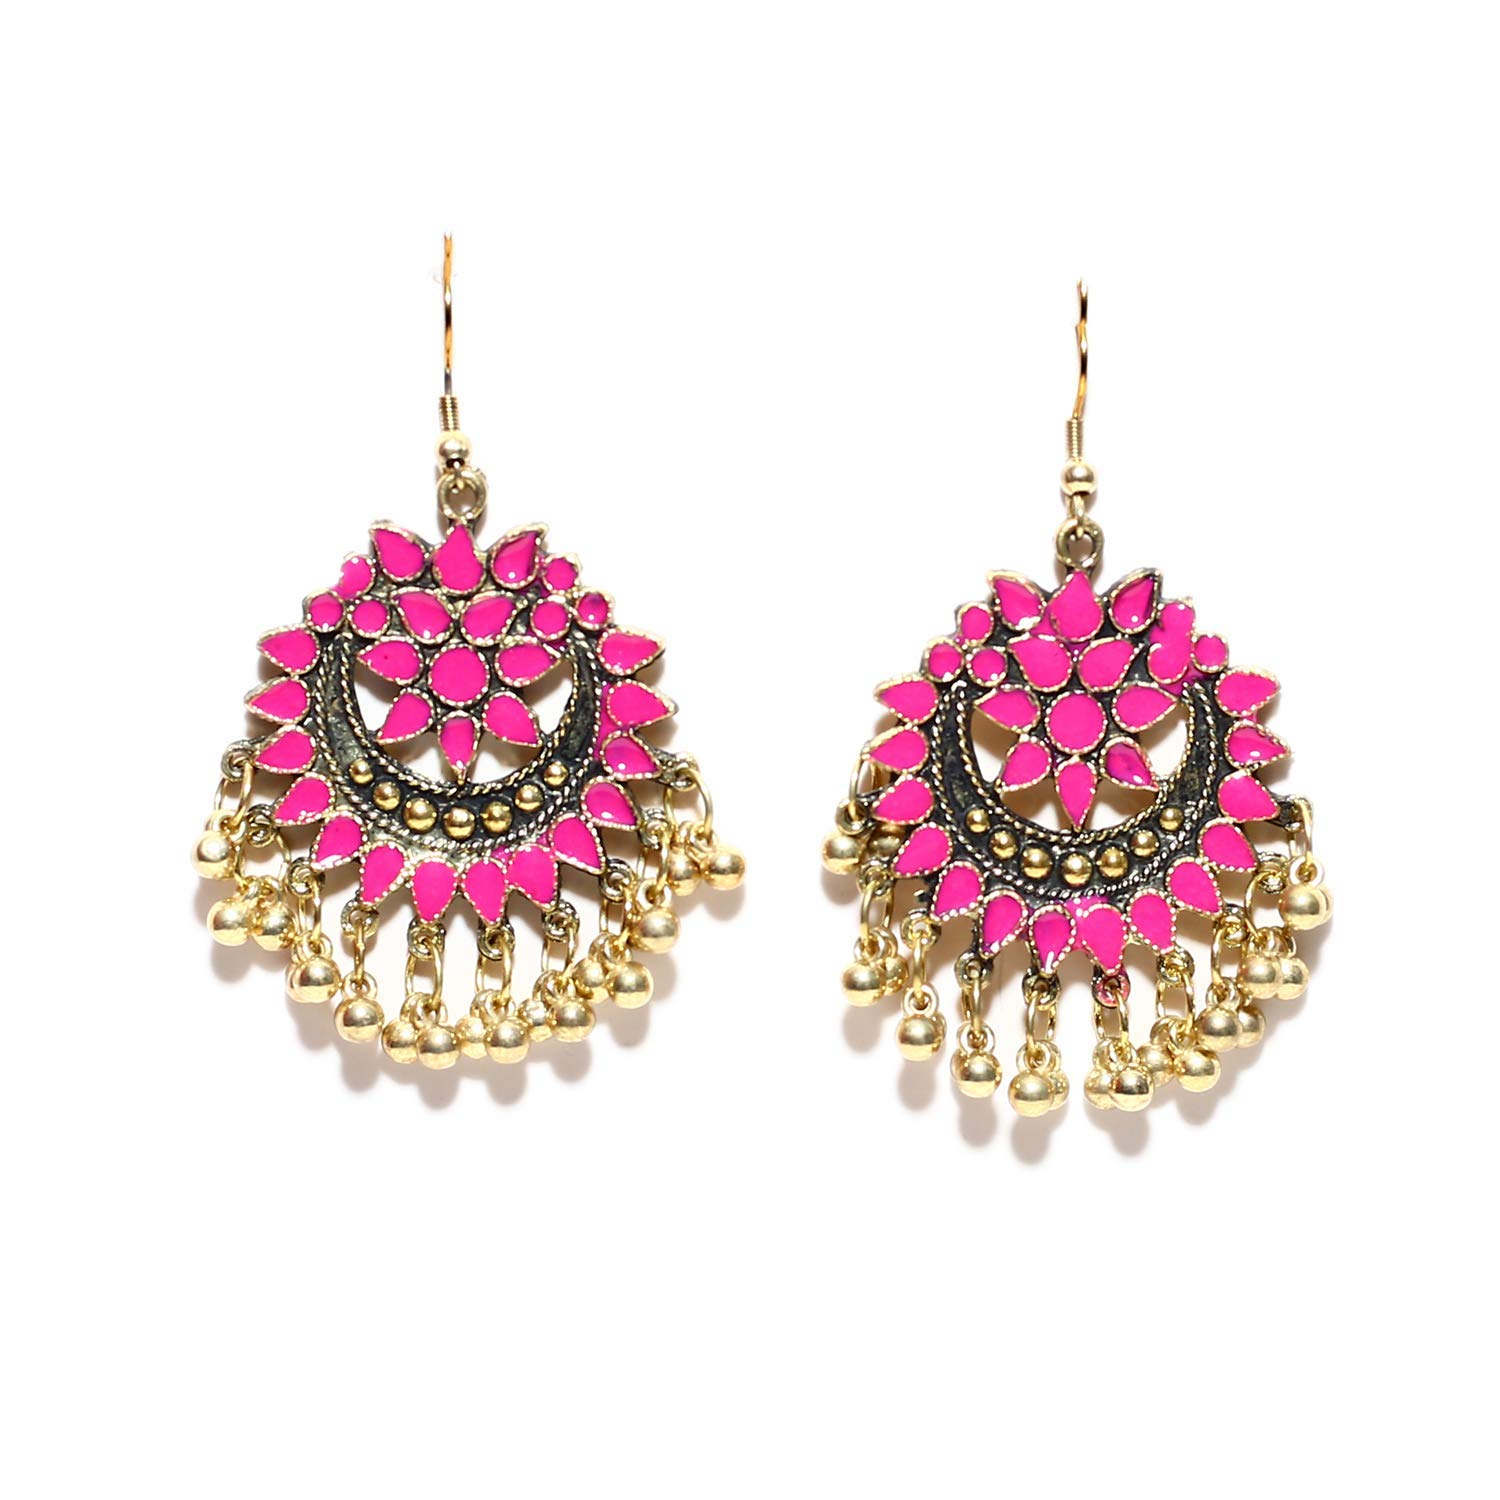 b3148ffd0 Get Quotations · Oxidized Ethnic Gold Earrings Fashion Jewelry Bollywood  Afghani Style Jhumki for Women Girls